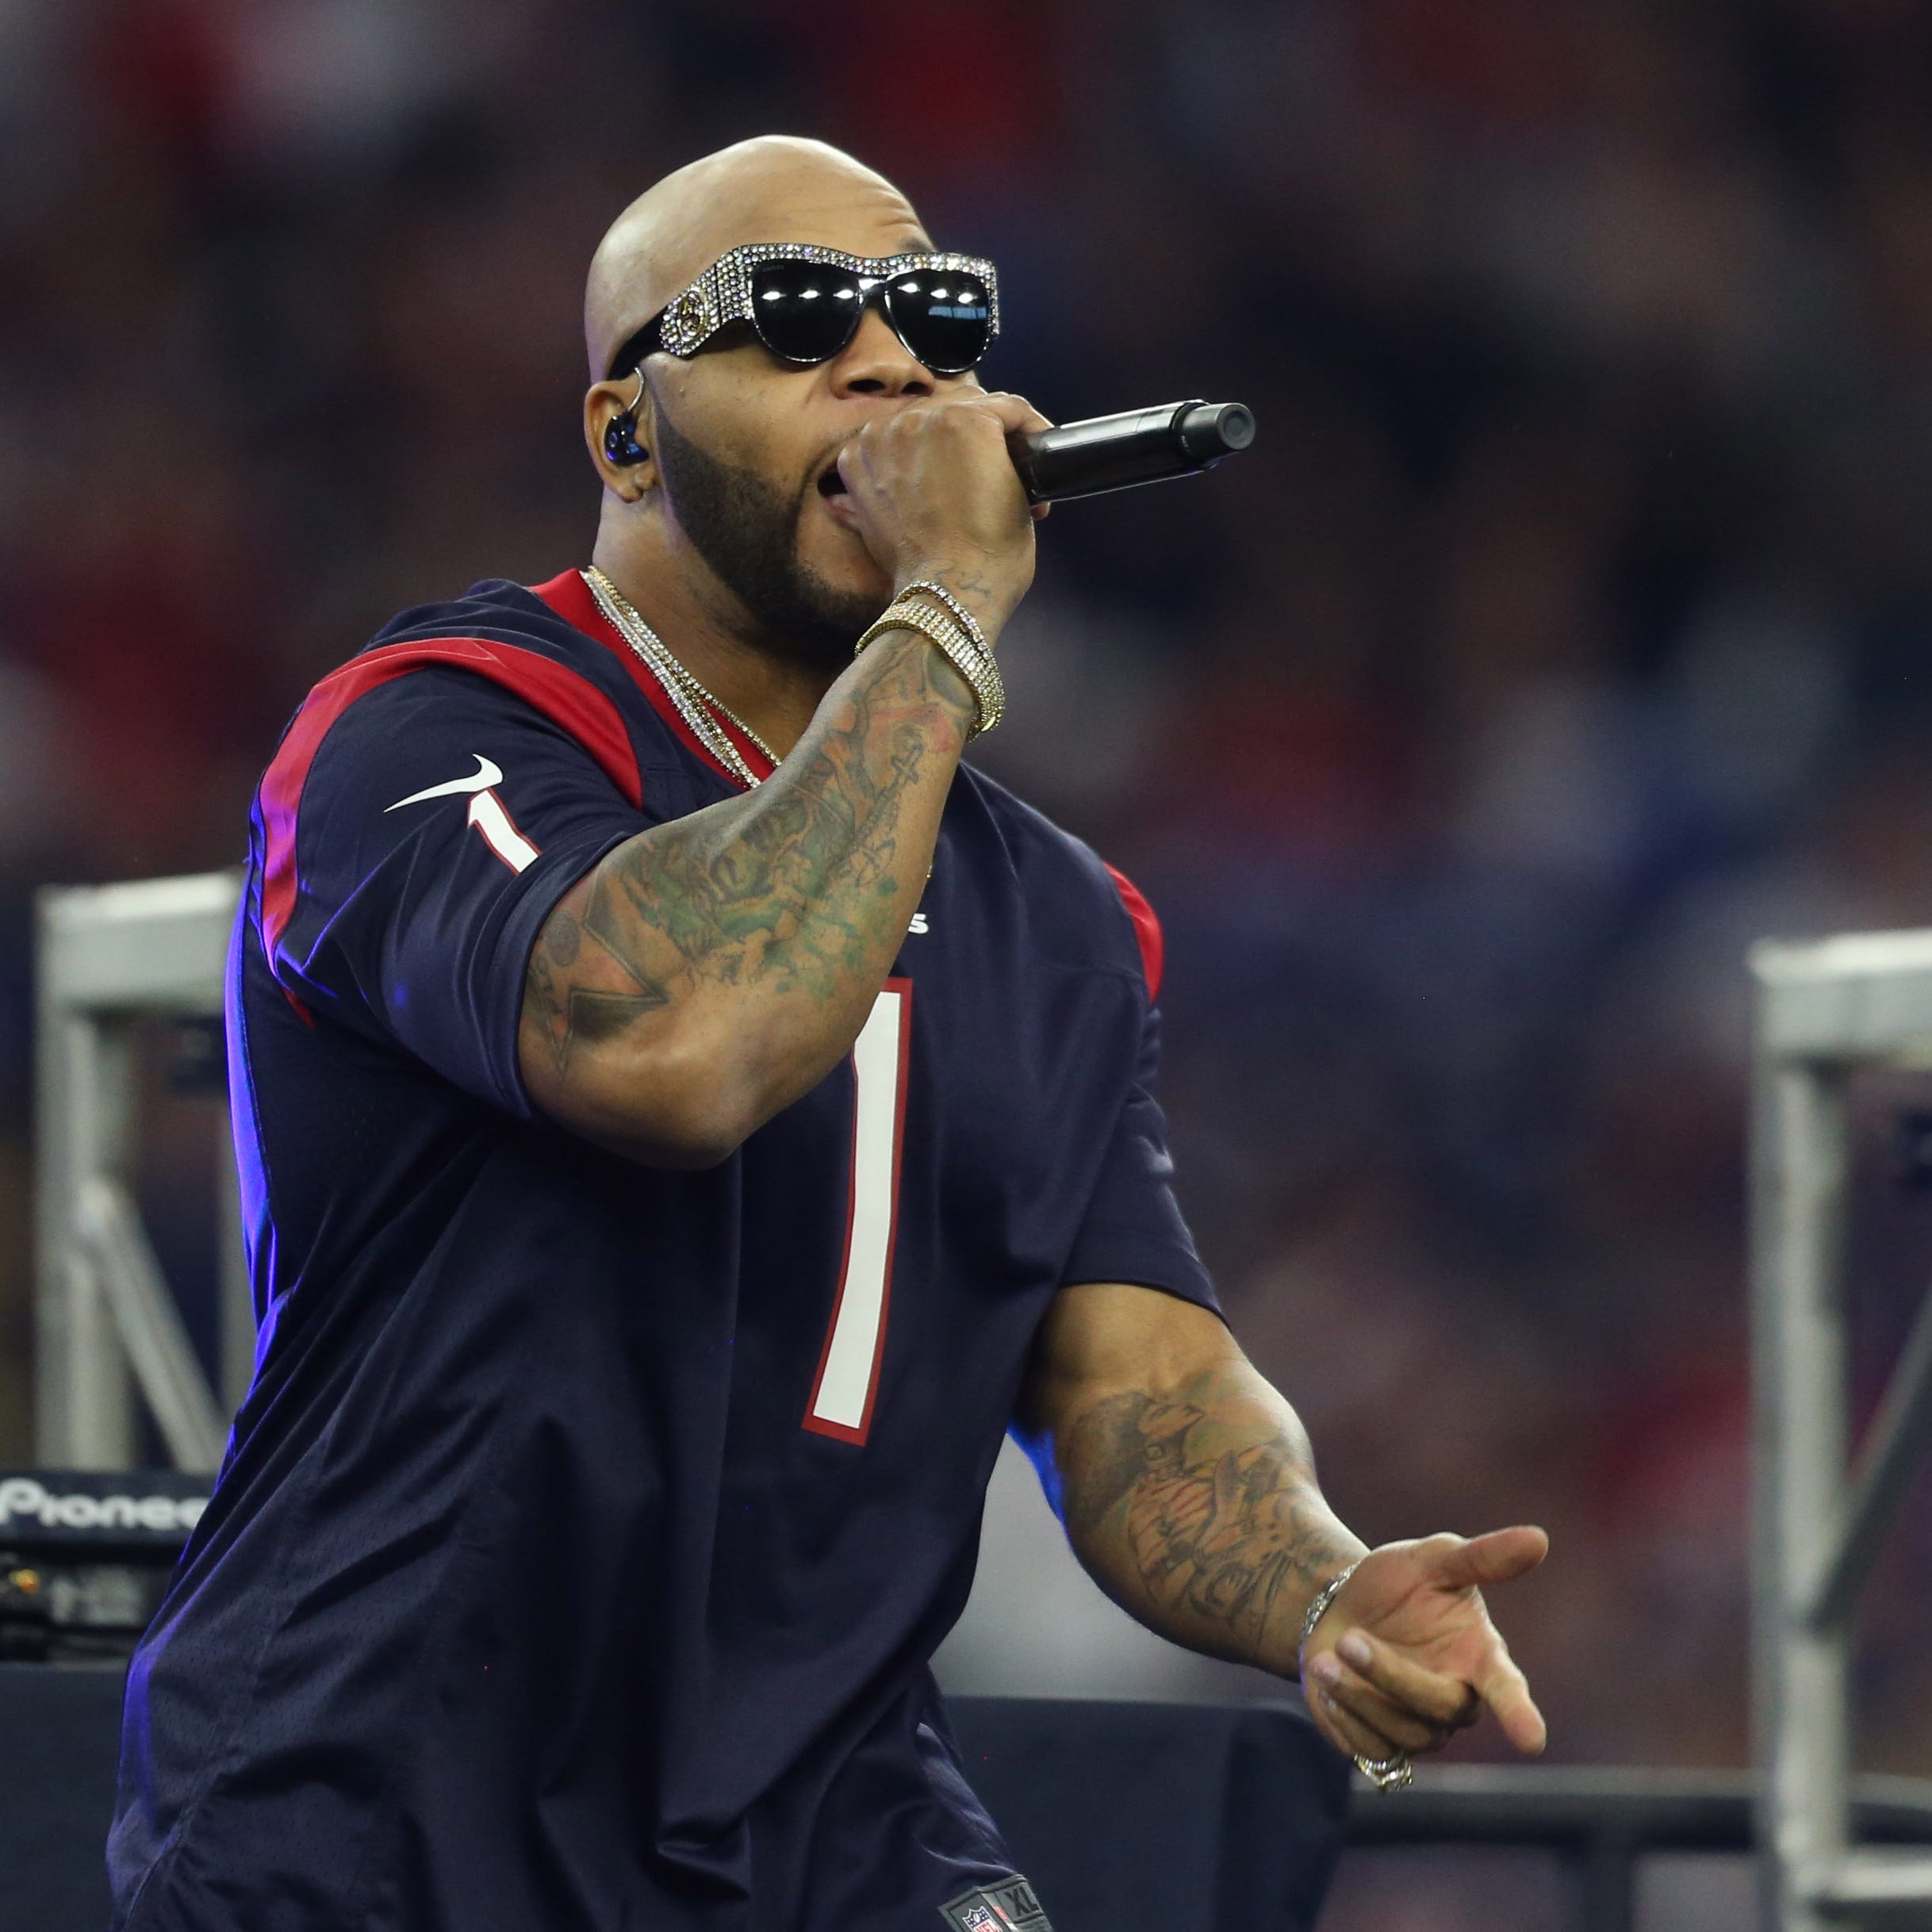 Nelly, TLC, Flo Rida to play Woodstock site at Bethel Woods